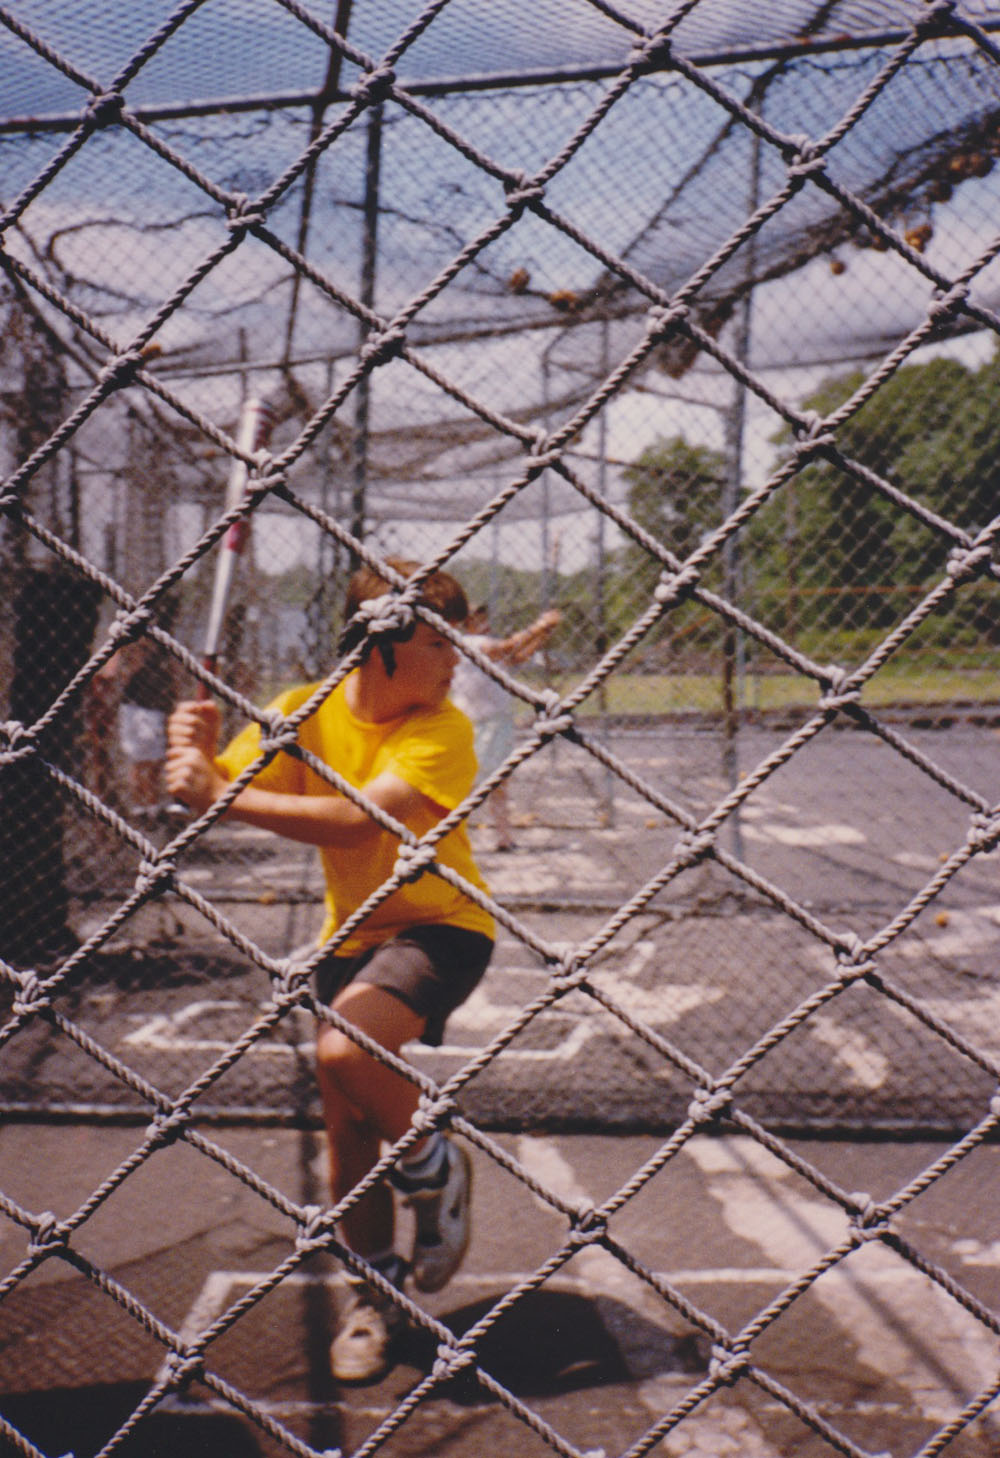 taking some cuts in a batting cage